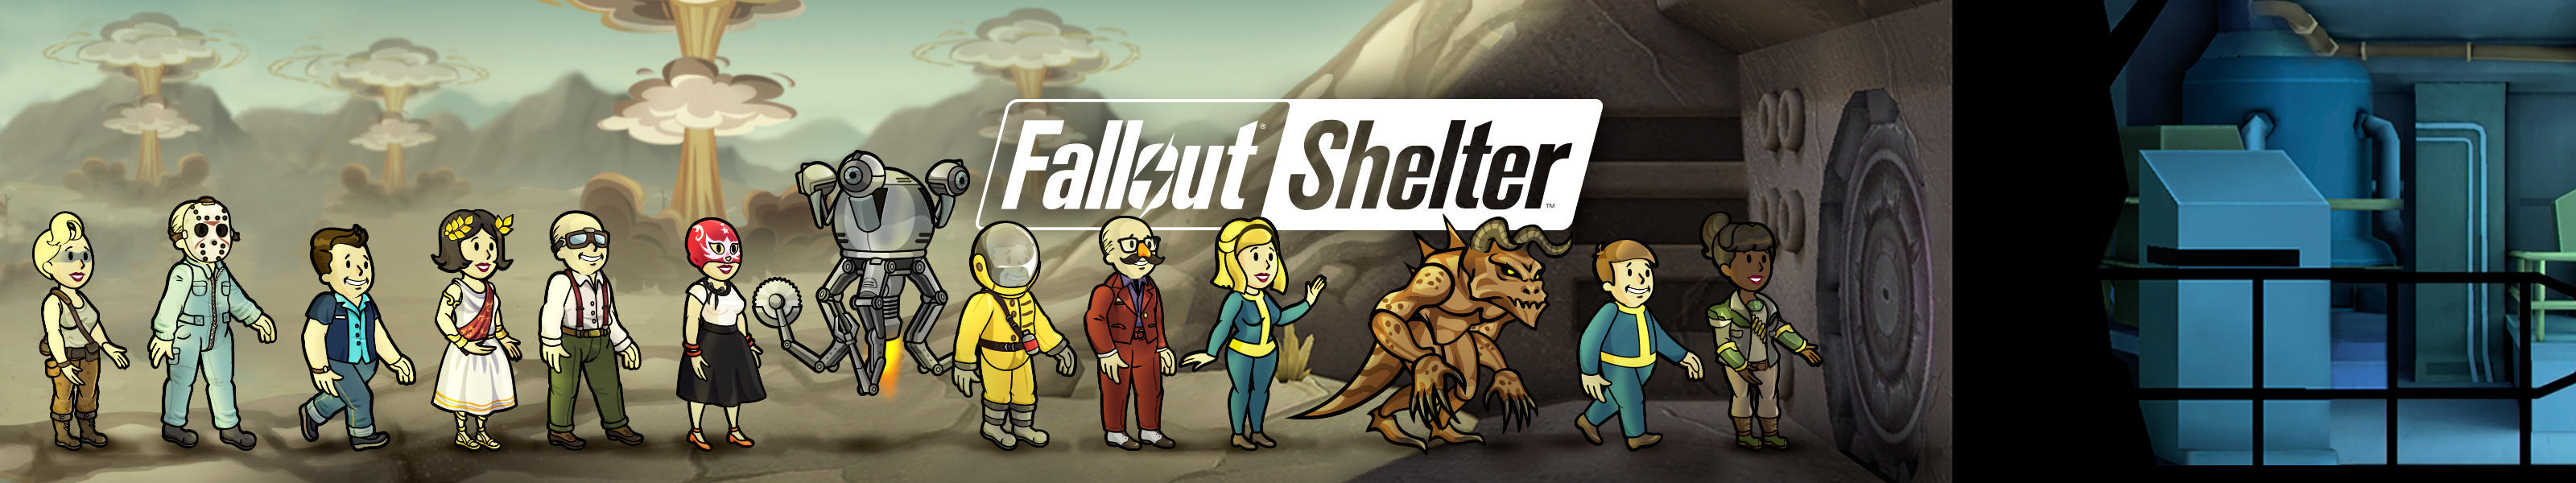 Fallout Shelter Android banner.png